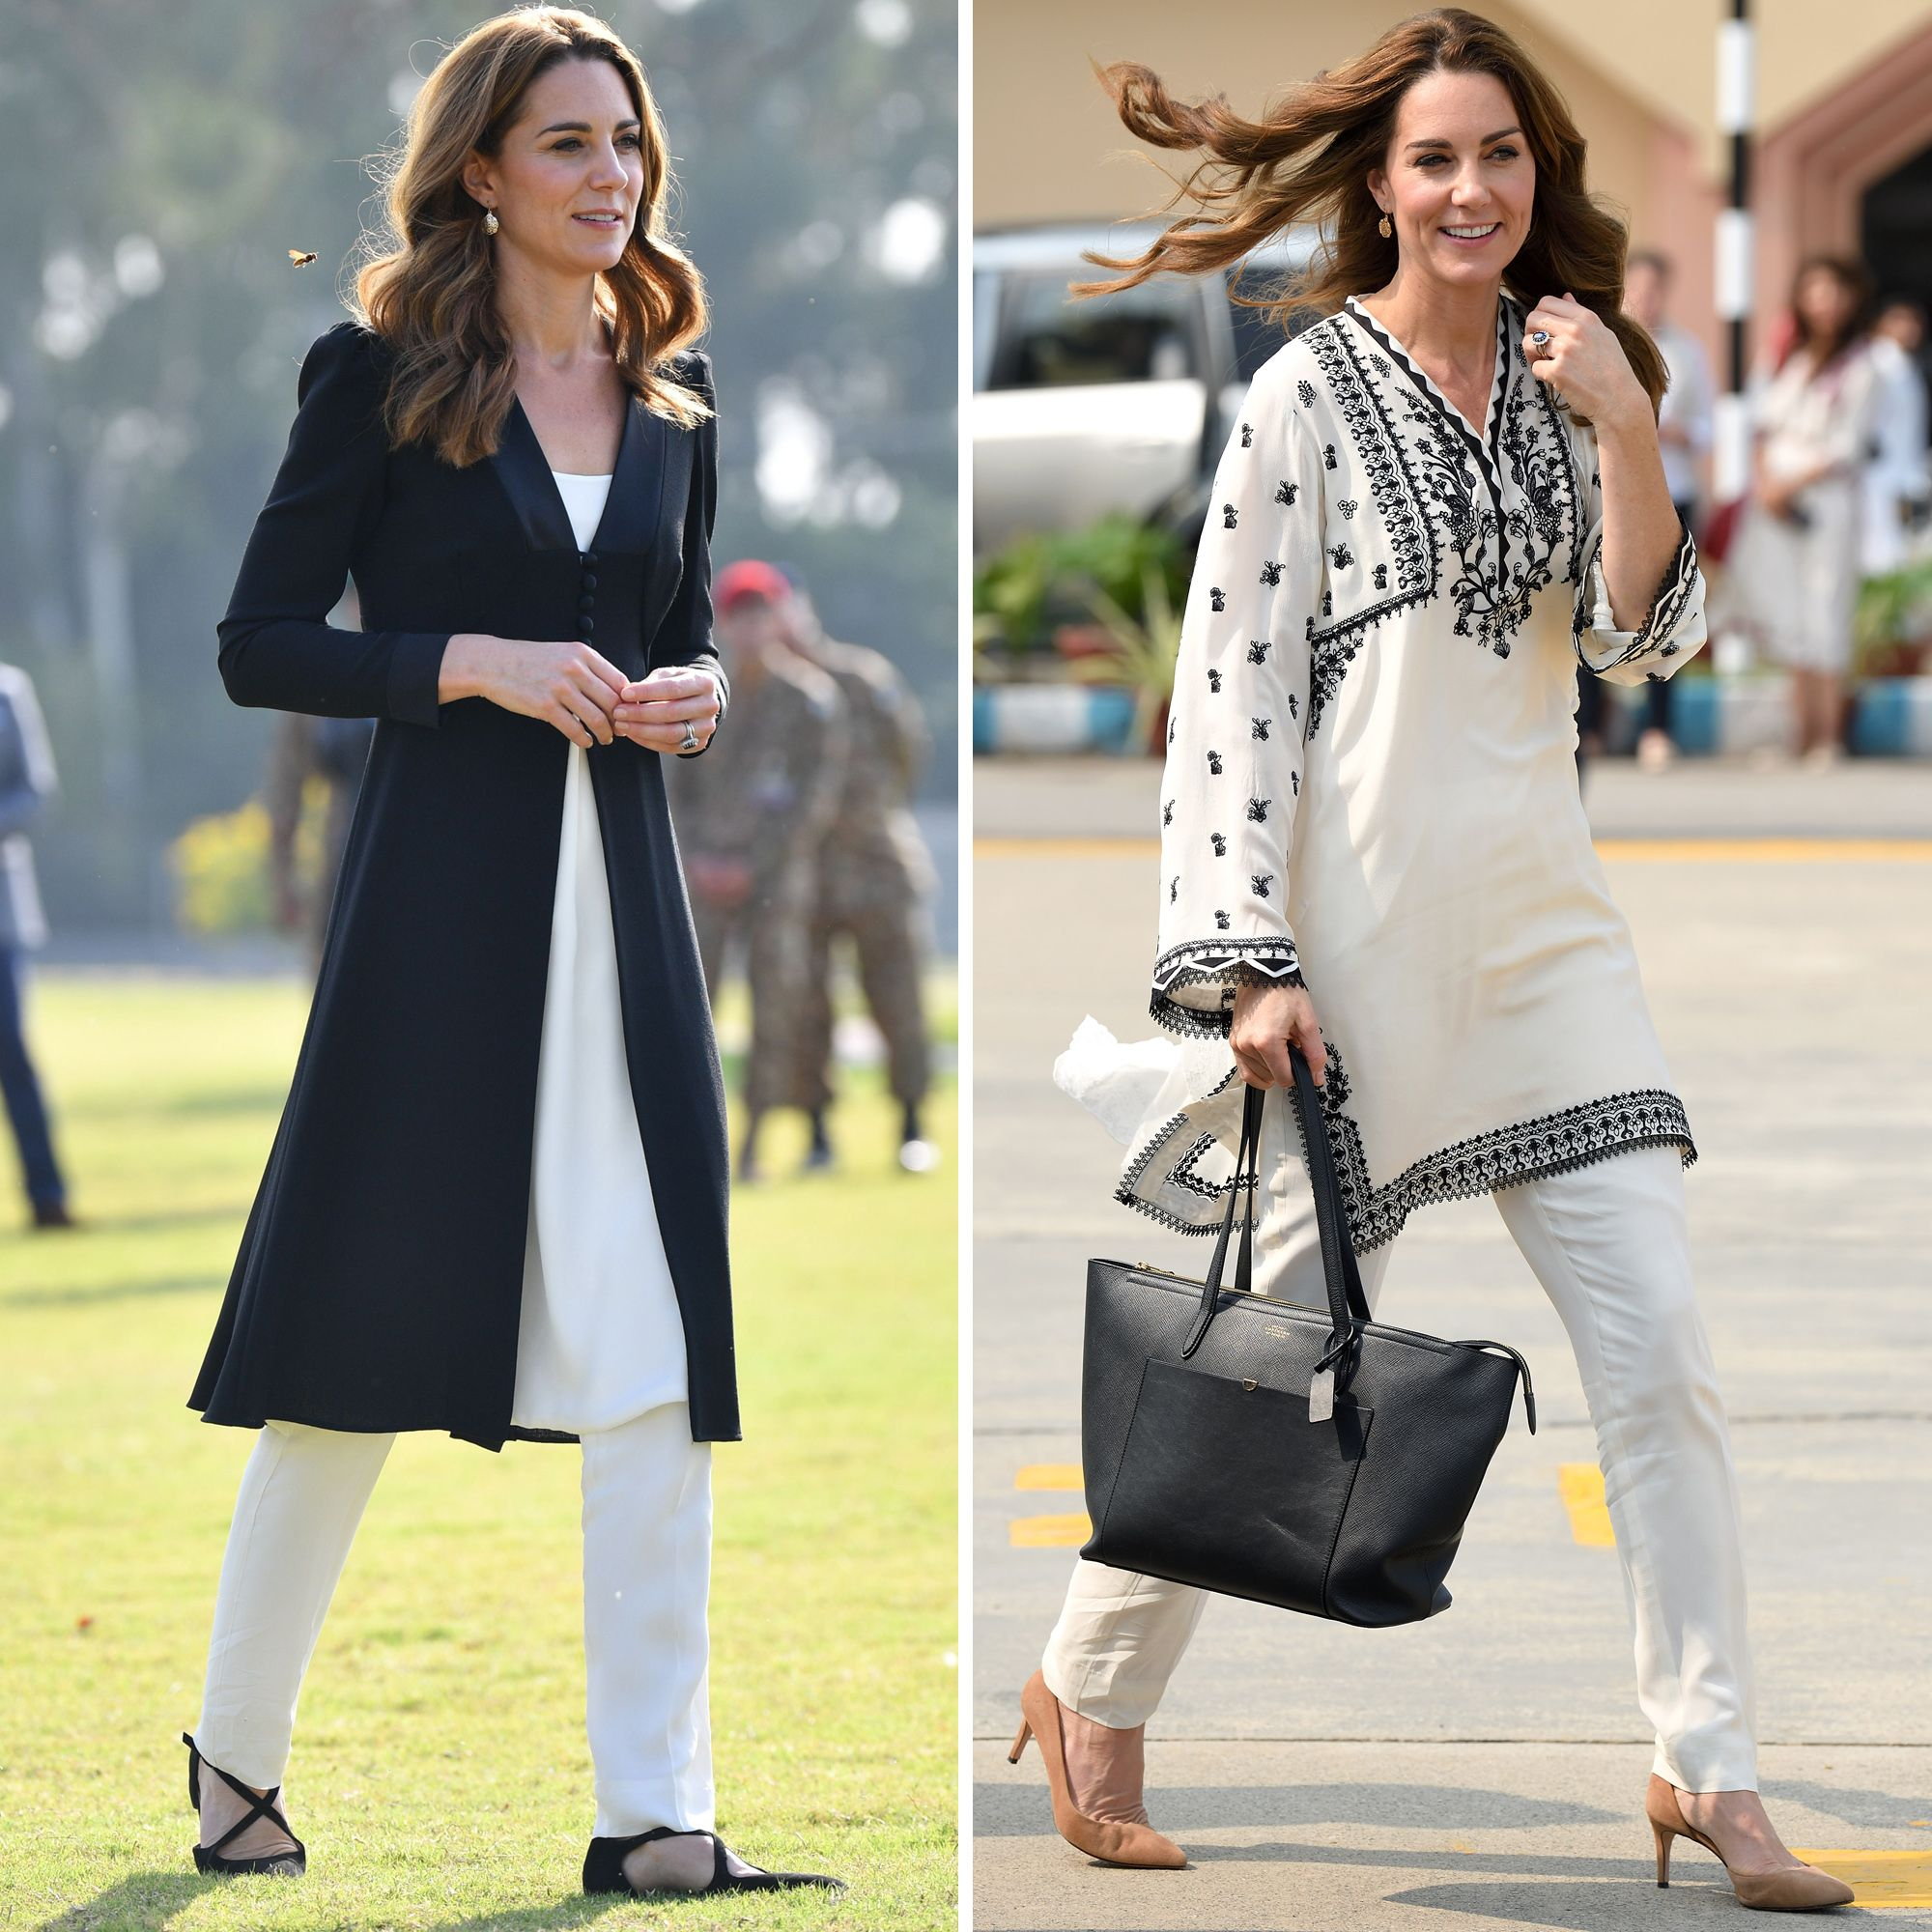 Kate Middleton Wears Two Black and White Looks for Her Last Day in Pakistan